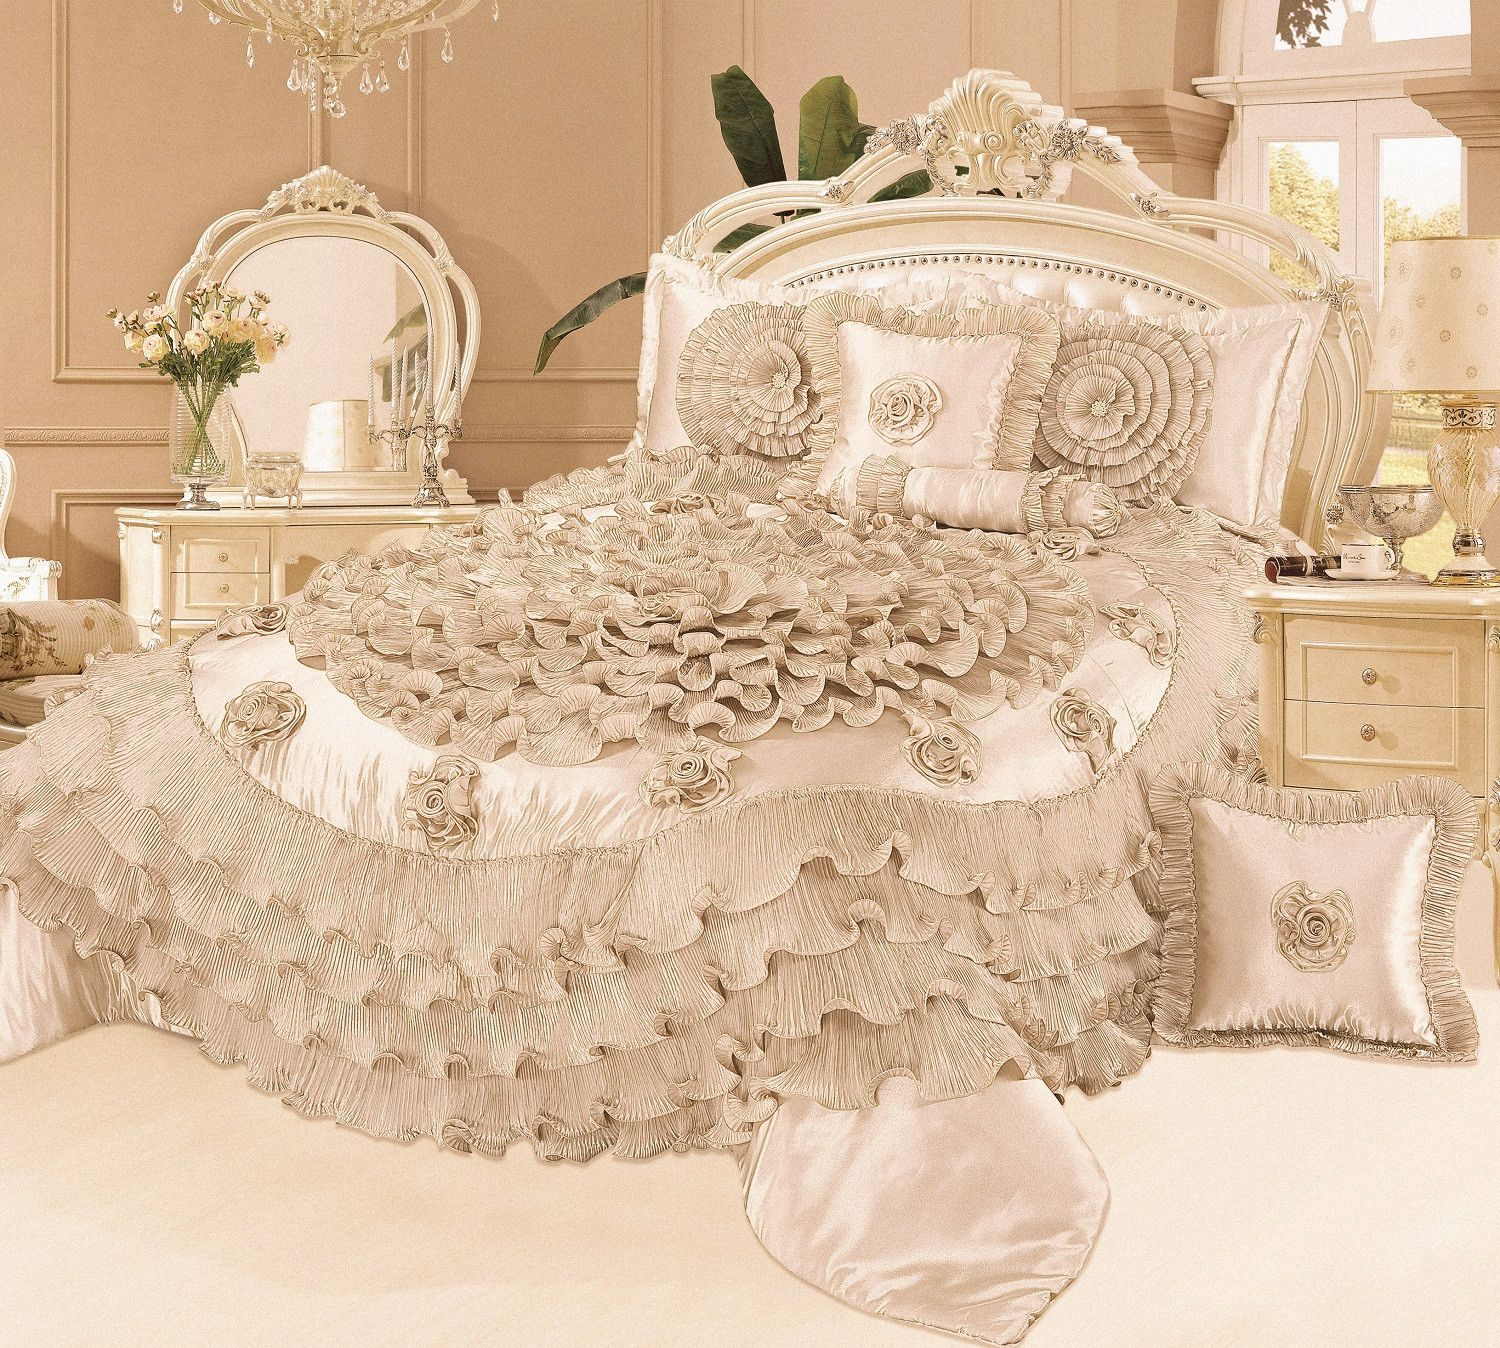 pink with amish full twin duvet lace cover burlap ruffle king in sets size conjunction colored beddings nursery xl plus together also set quilts comforter bedding a and of white cream off what dusty is